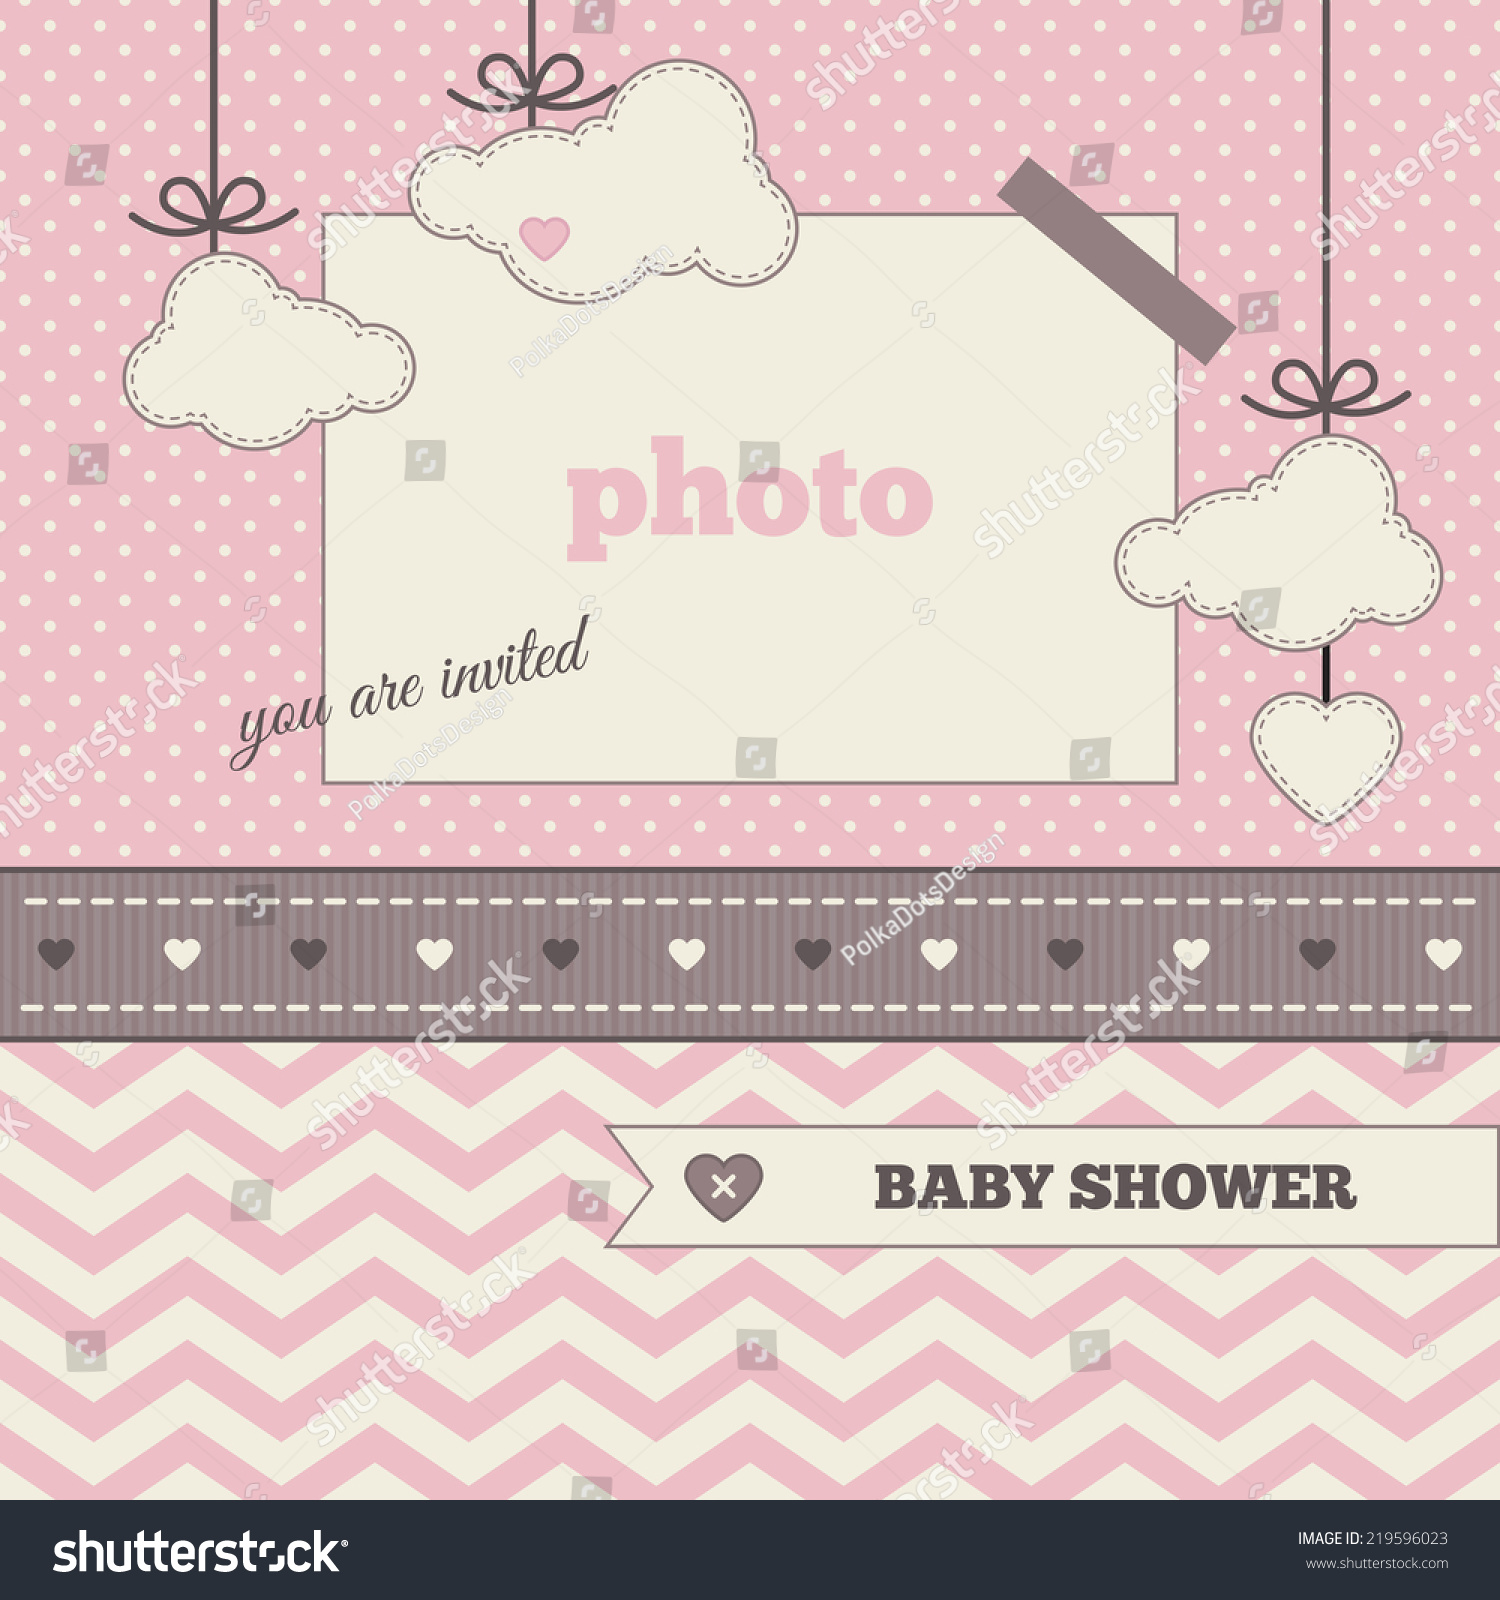 Baby Shower Invitation Template Brown Pink Stock Vector 219596023 ...